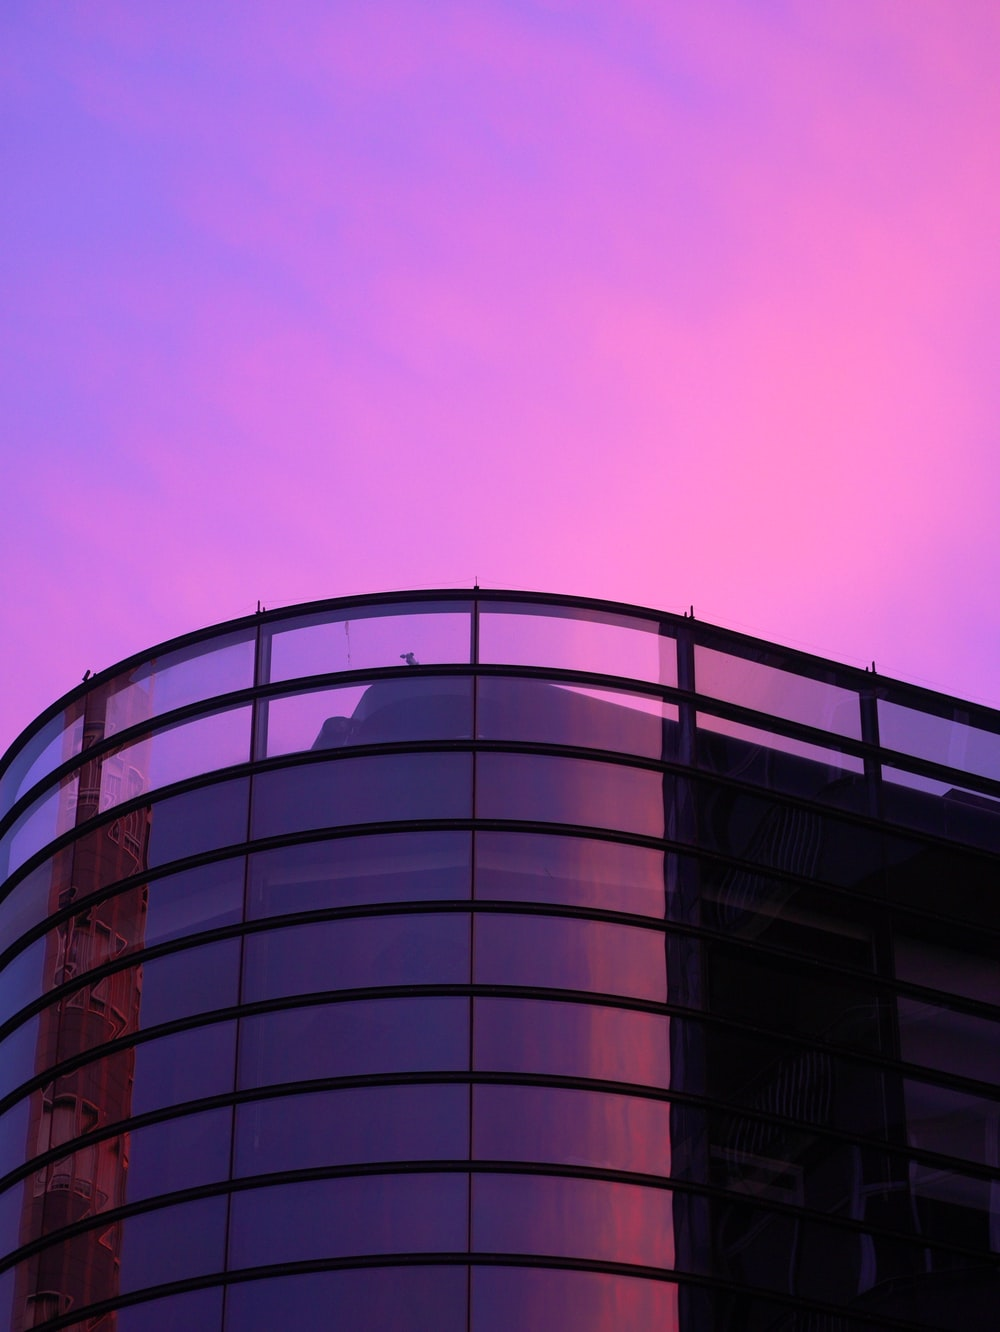 gray concrete building under pink sky